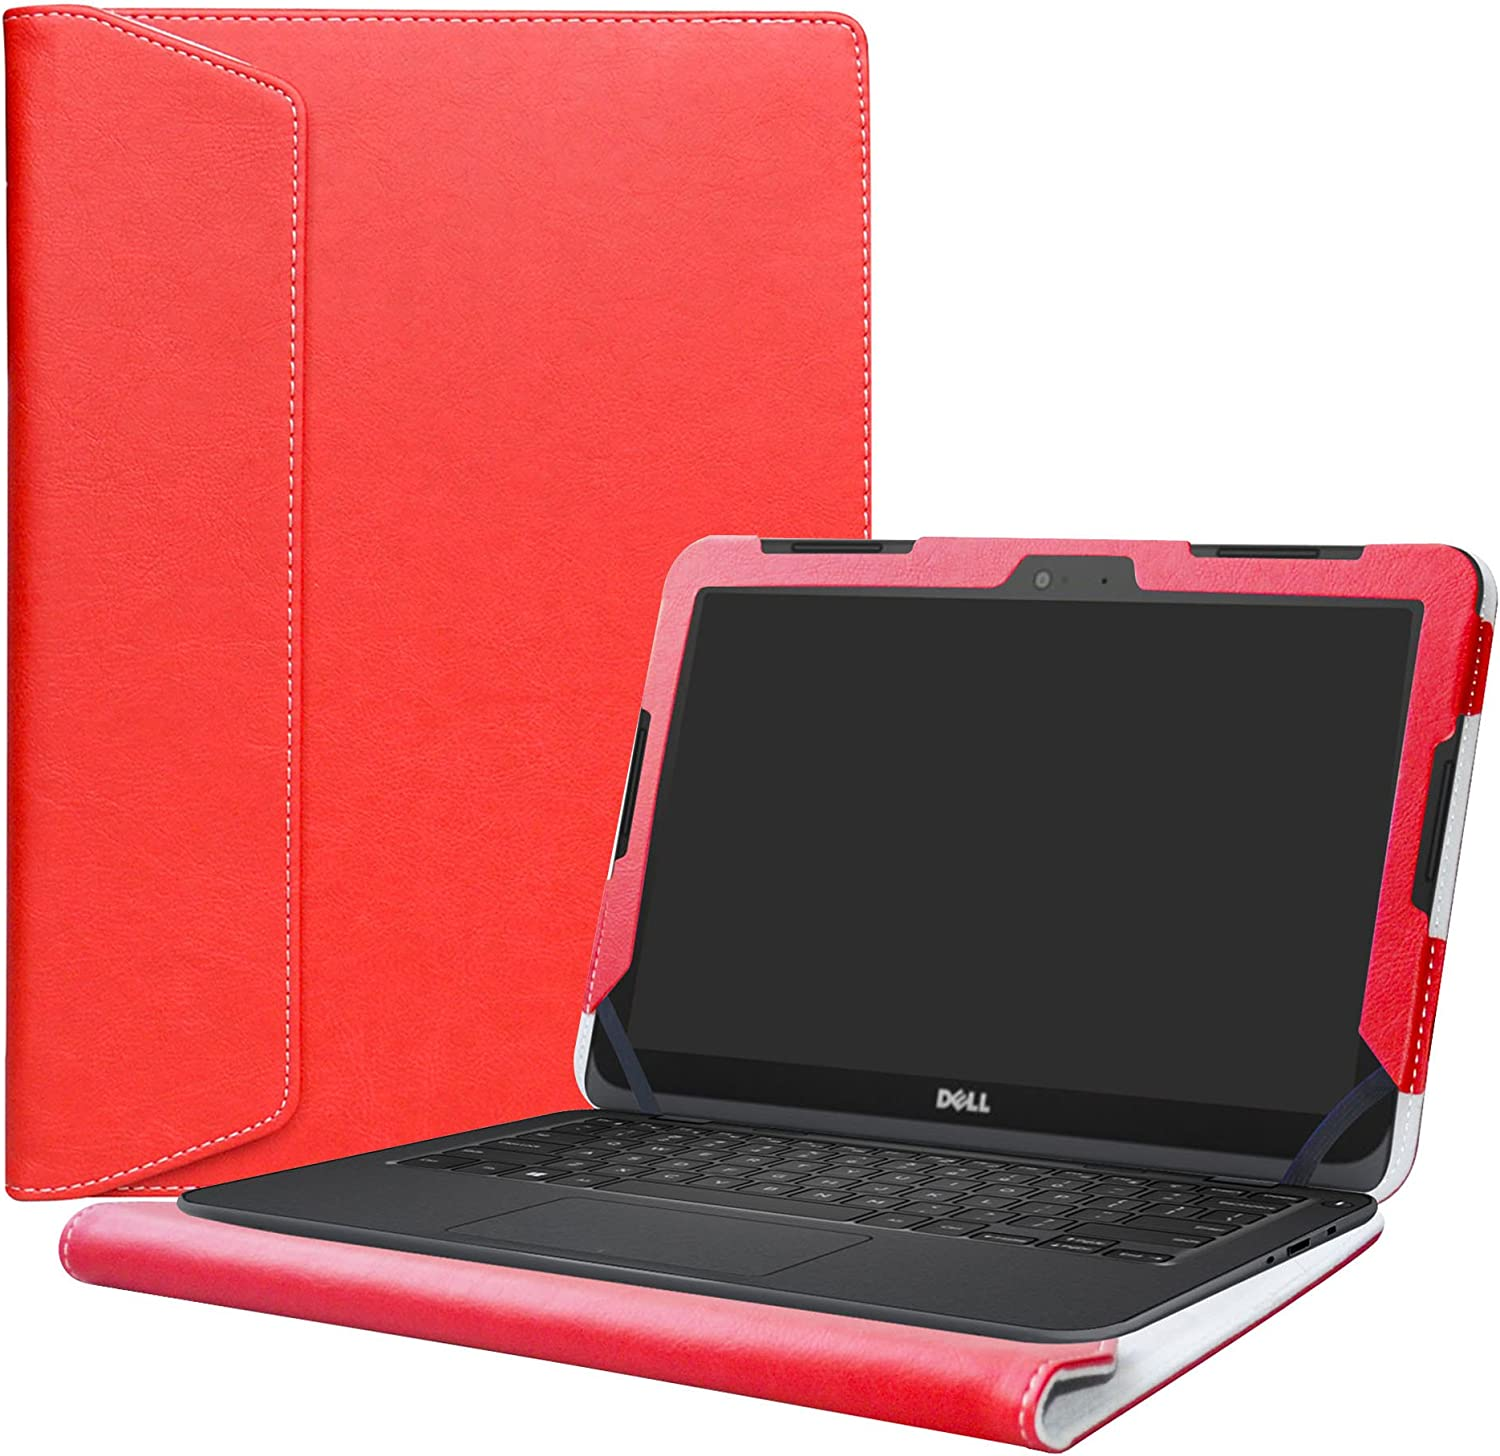 "Alapmk Protective Case Cover for 11.6"" Dell Inspiron 11 3180 3162 3164 Series Laptop(Warning:Not fit Inspiron 11 3137 3138 3147 3148 Series),Red"